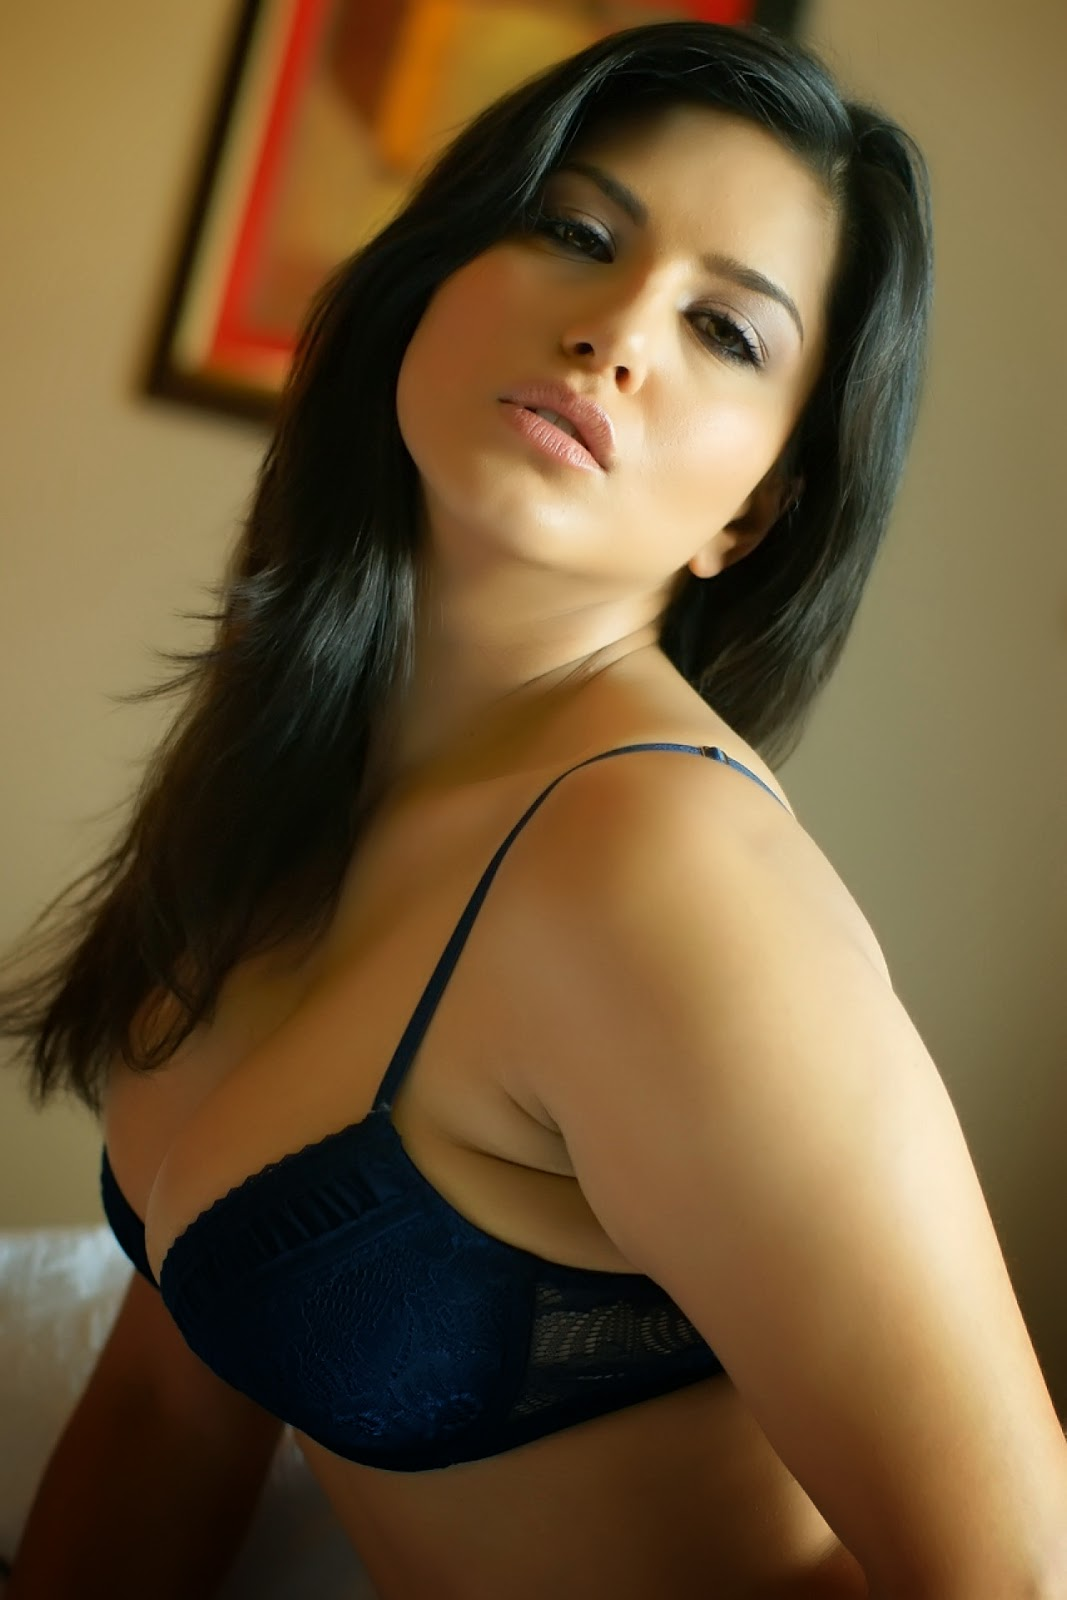 Sunny leone sexy photo